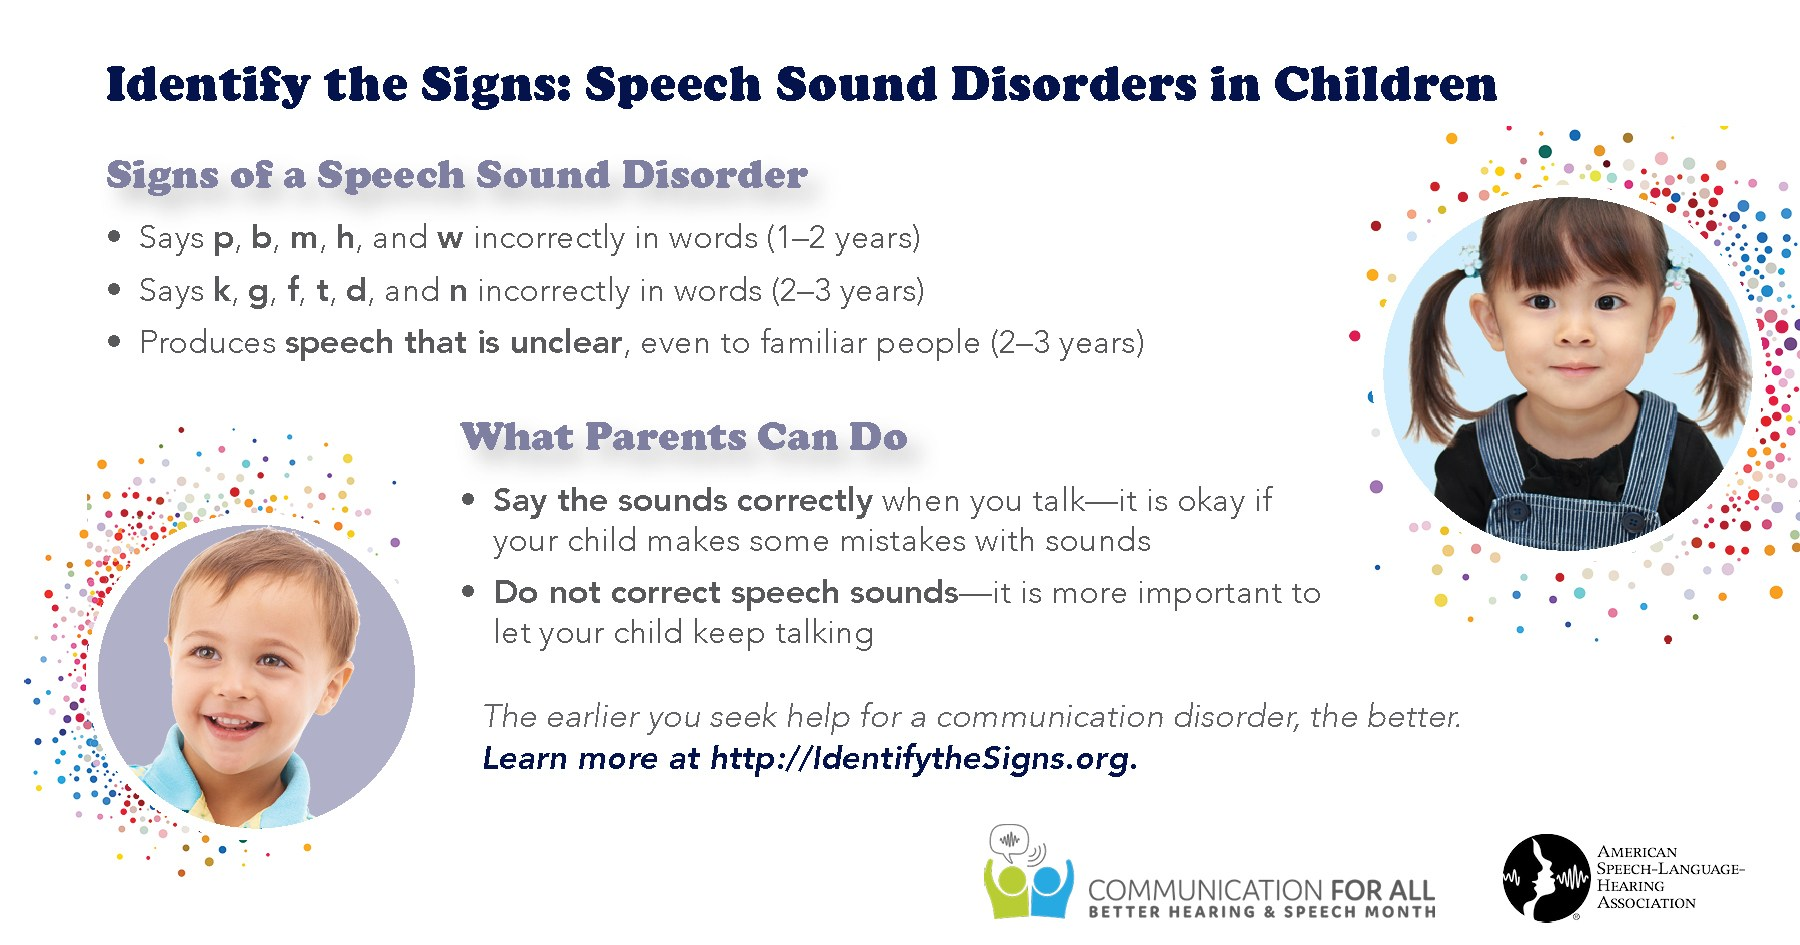 Identify-Signs-Speech-Sound-Disorders.jpg